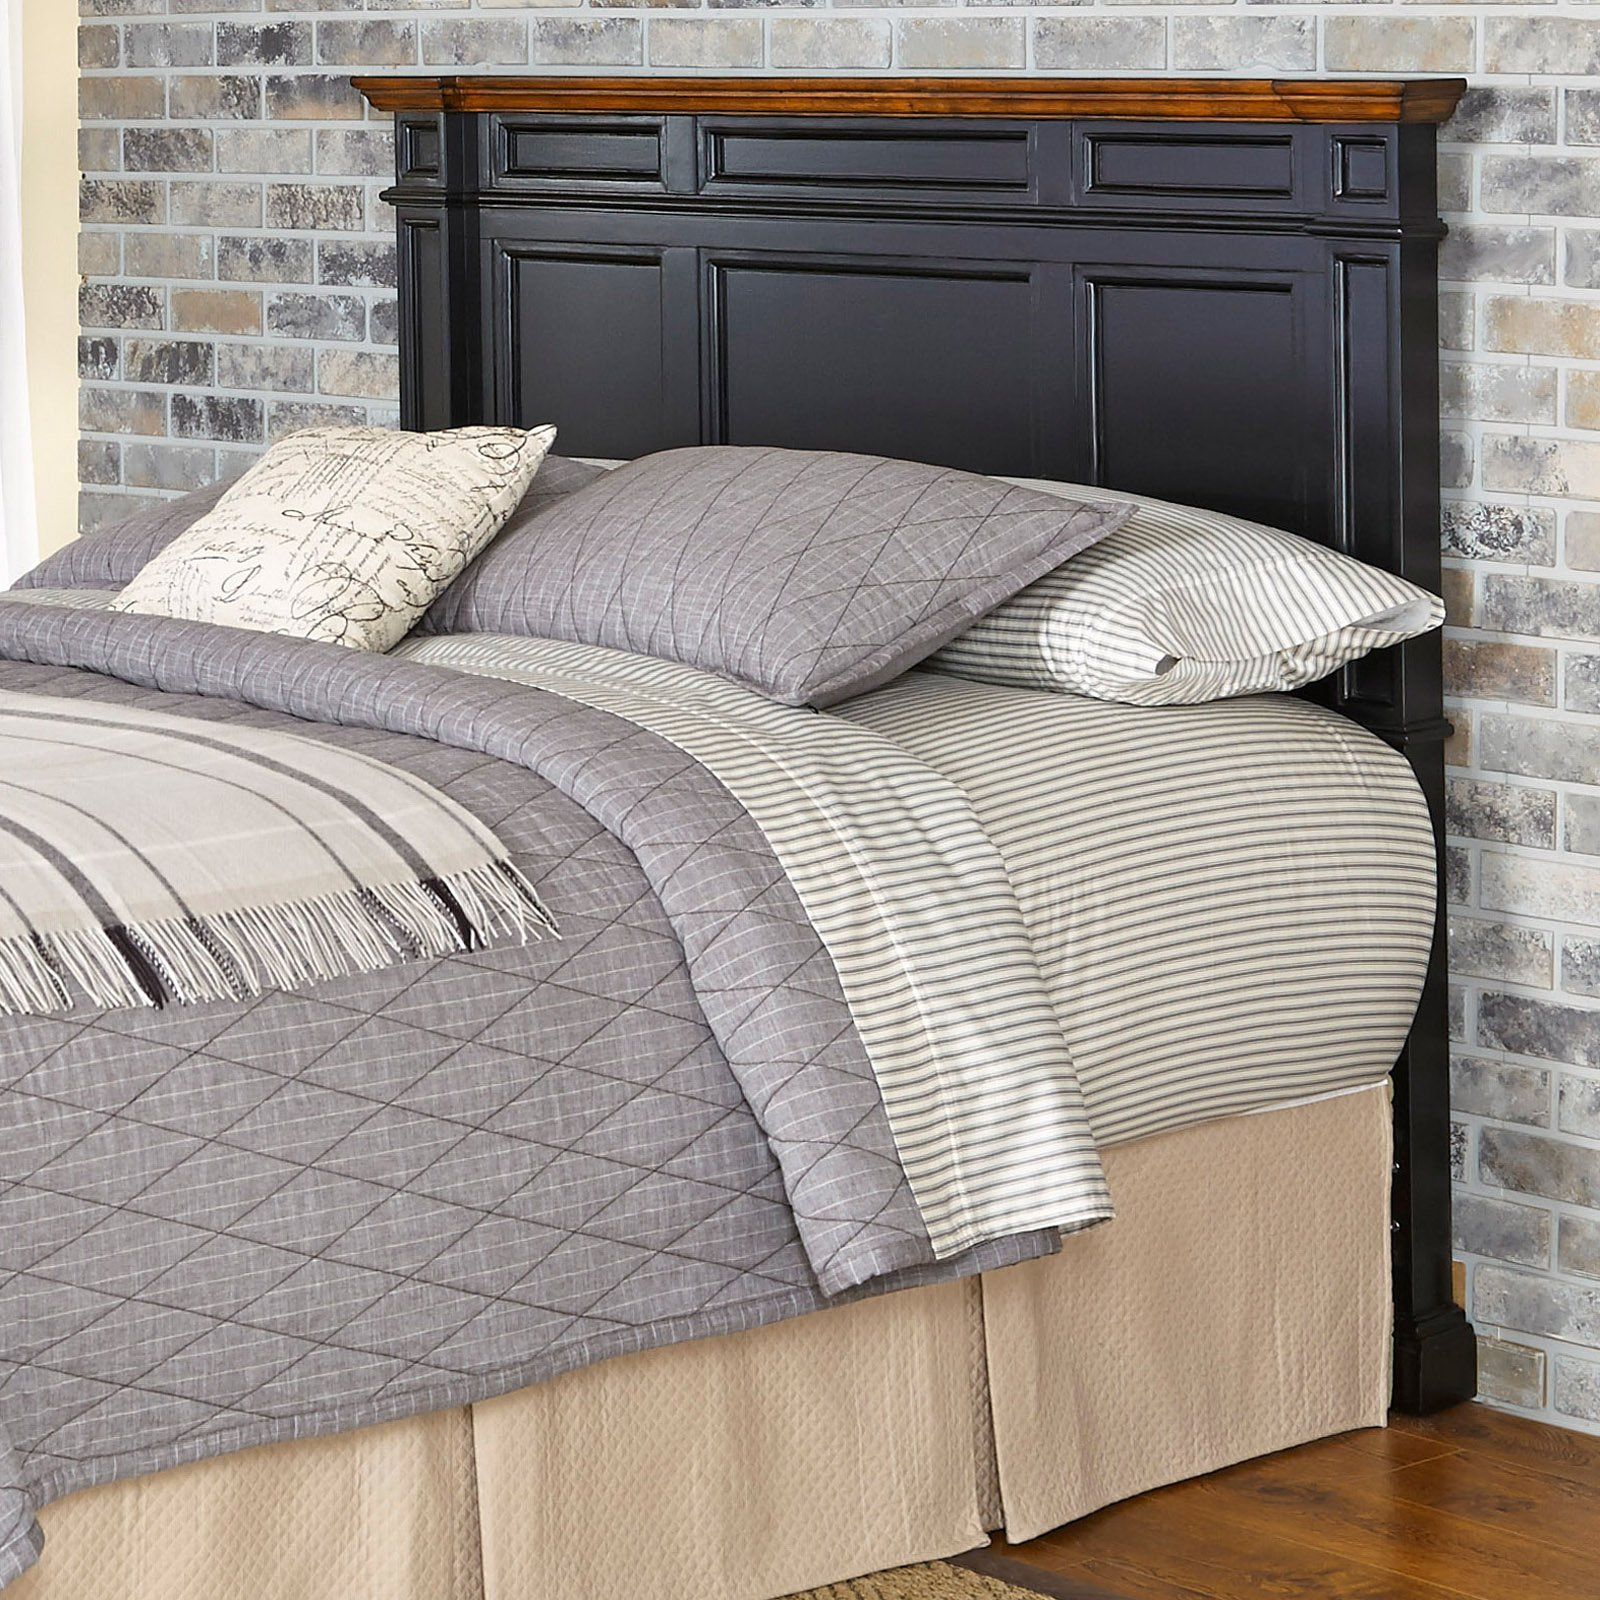 Home Styles Americana Queen/Full Headboard